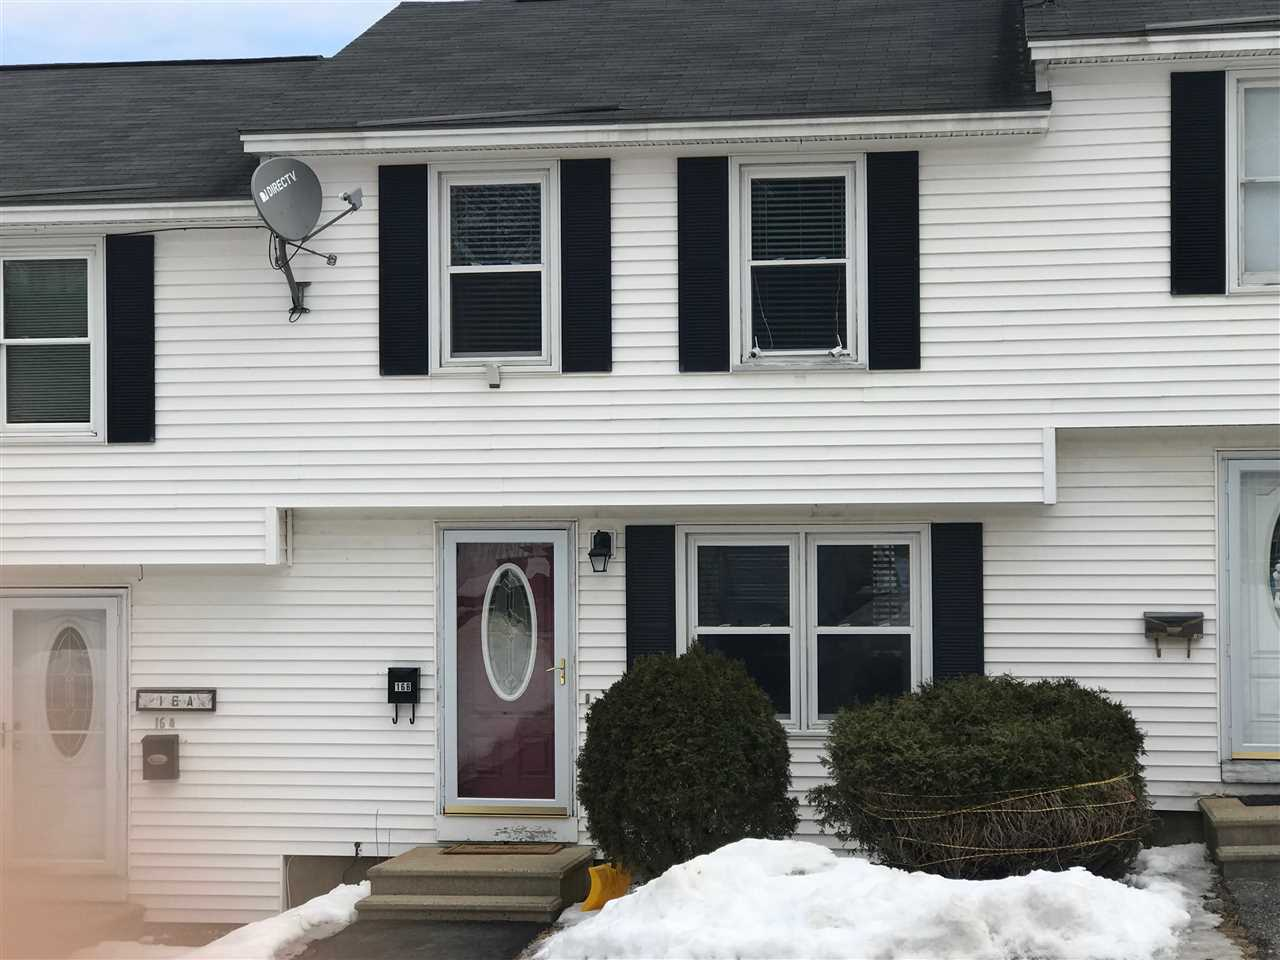 image of Allenstown NH Condo | sq.ft. 1456